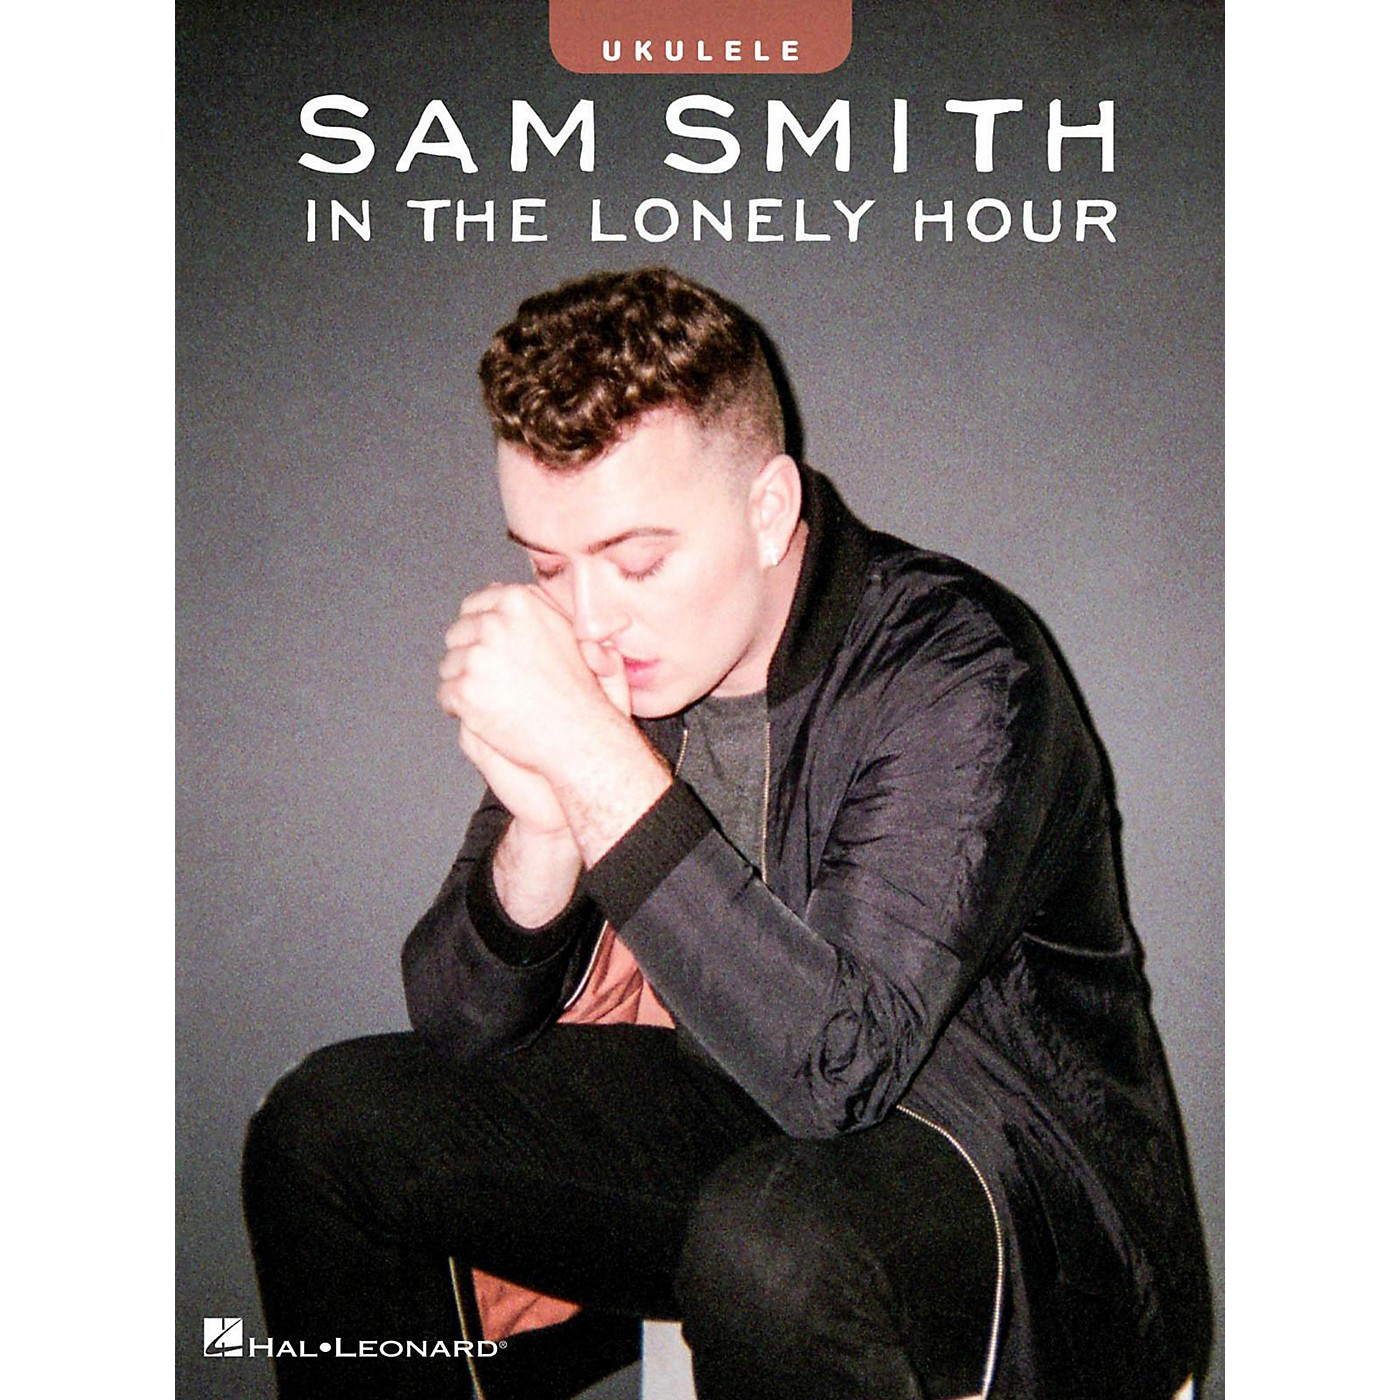 Hal Leonard Sam Smith - In the Lonely Hour Ukulele Songbook thumbnail